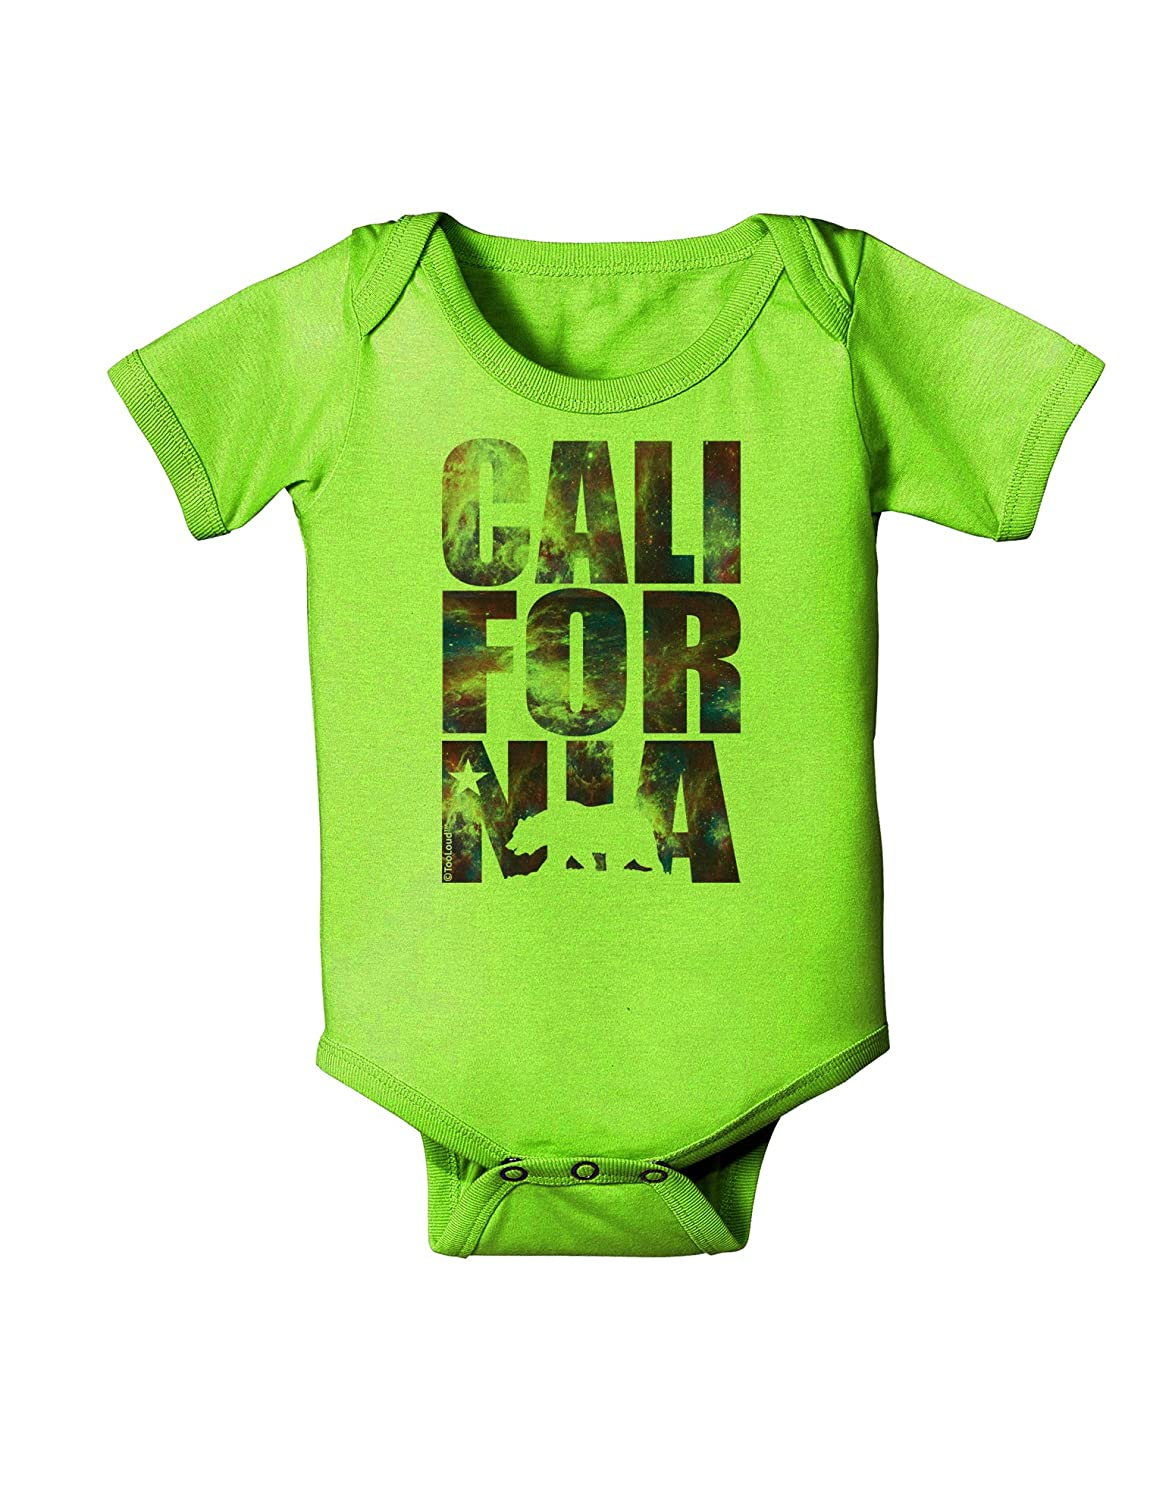 Space Nebula Print Baby Romper Bodysuit TooLoud California Republic Design